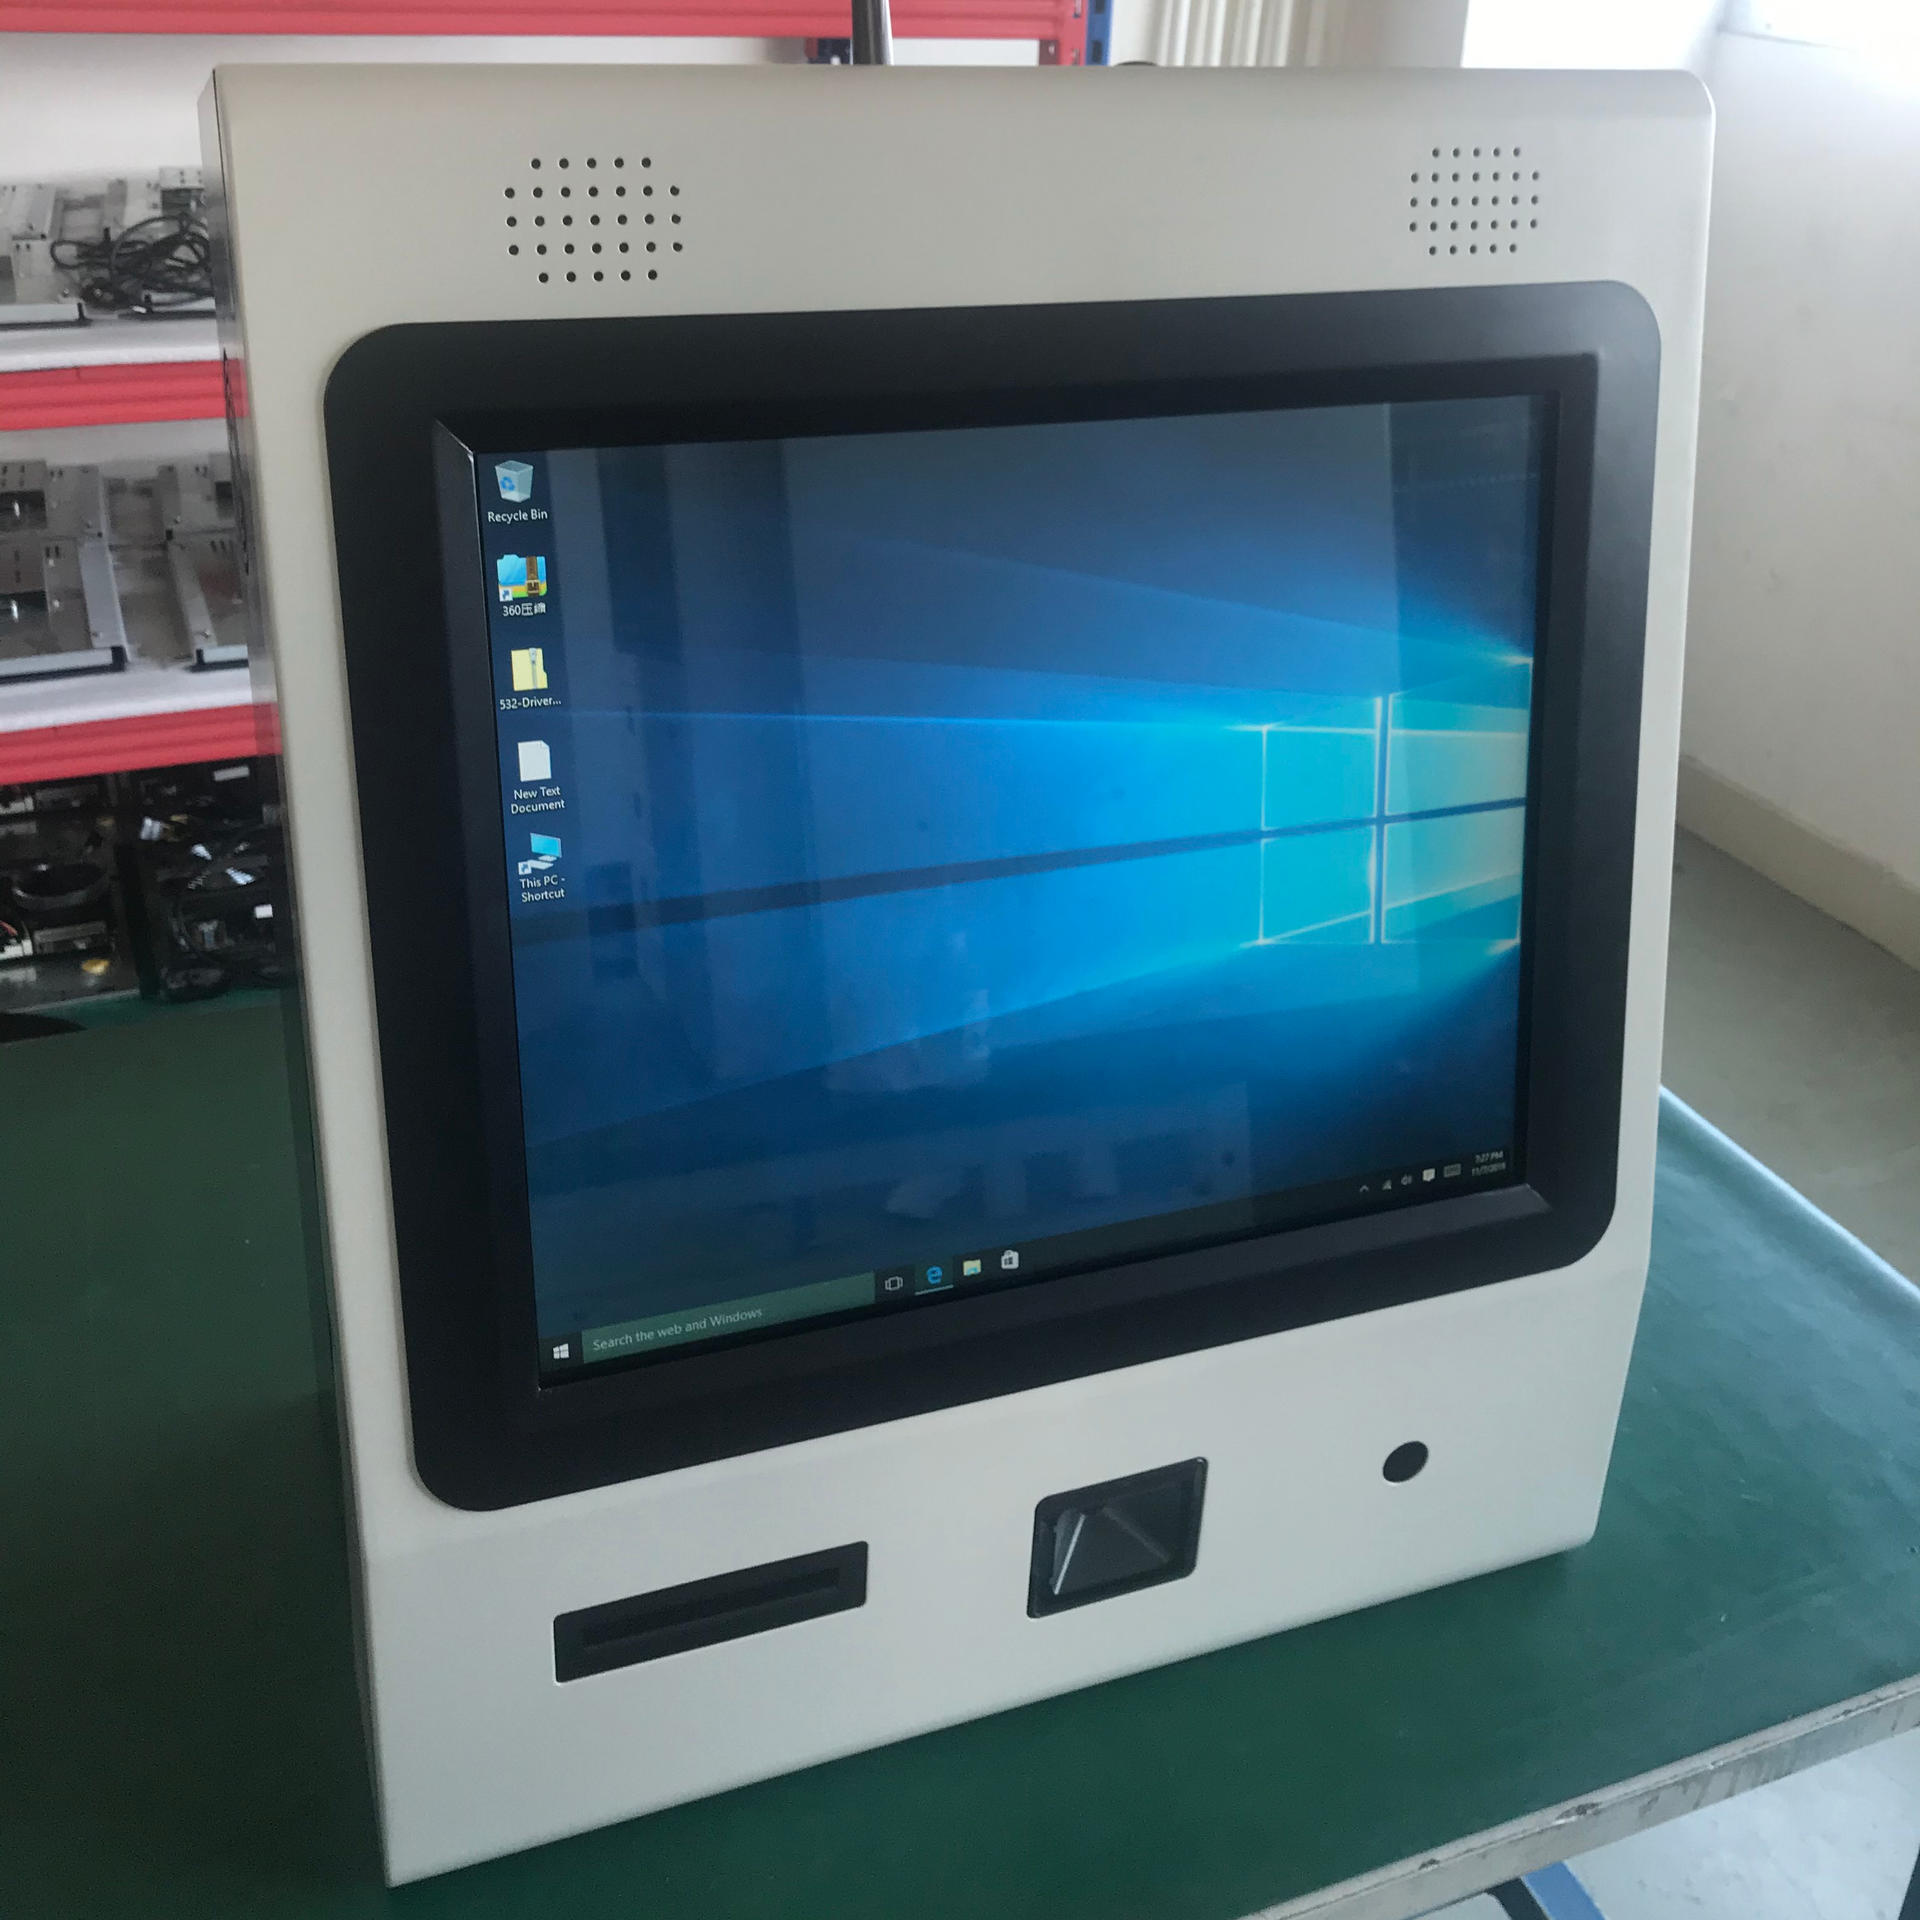 Kiosk Factory Weighing Kiosk with Barcode Scanner